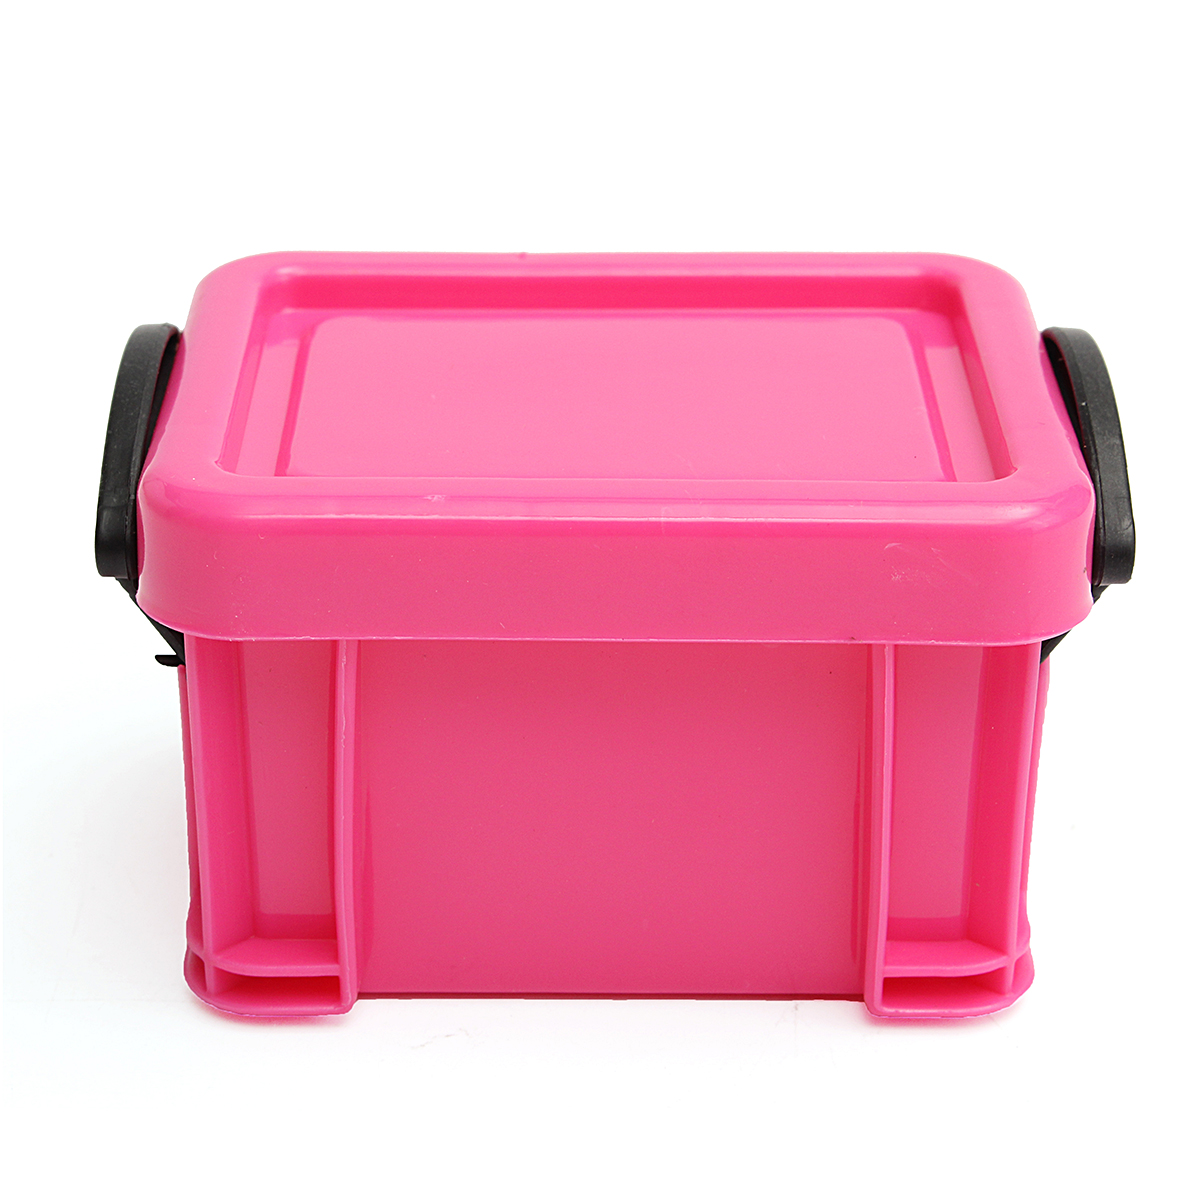 9Pcs Mini Multicolored Storage Boxes Management Plastic Container Organizer with Lid 6.5x5x4.8cm